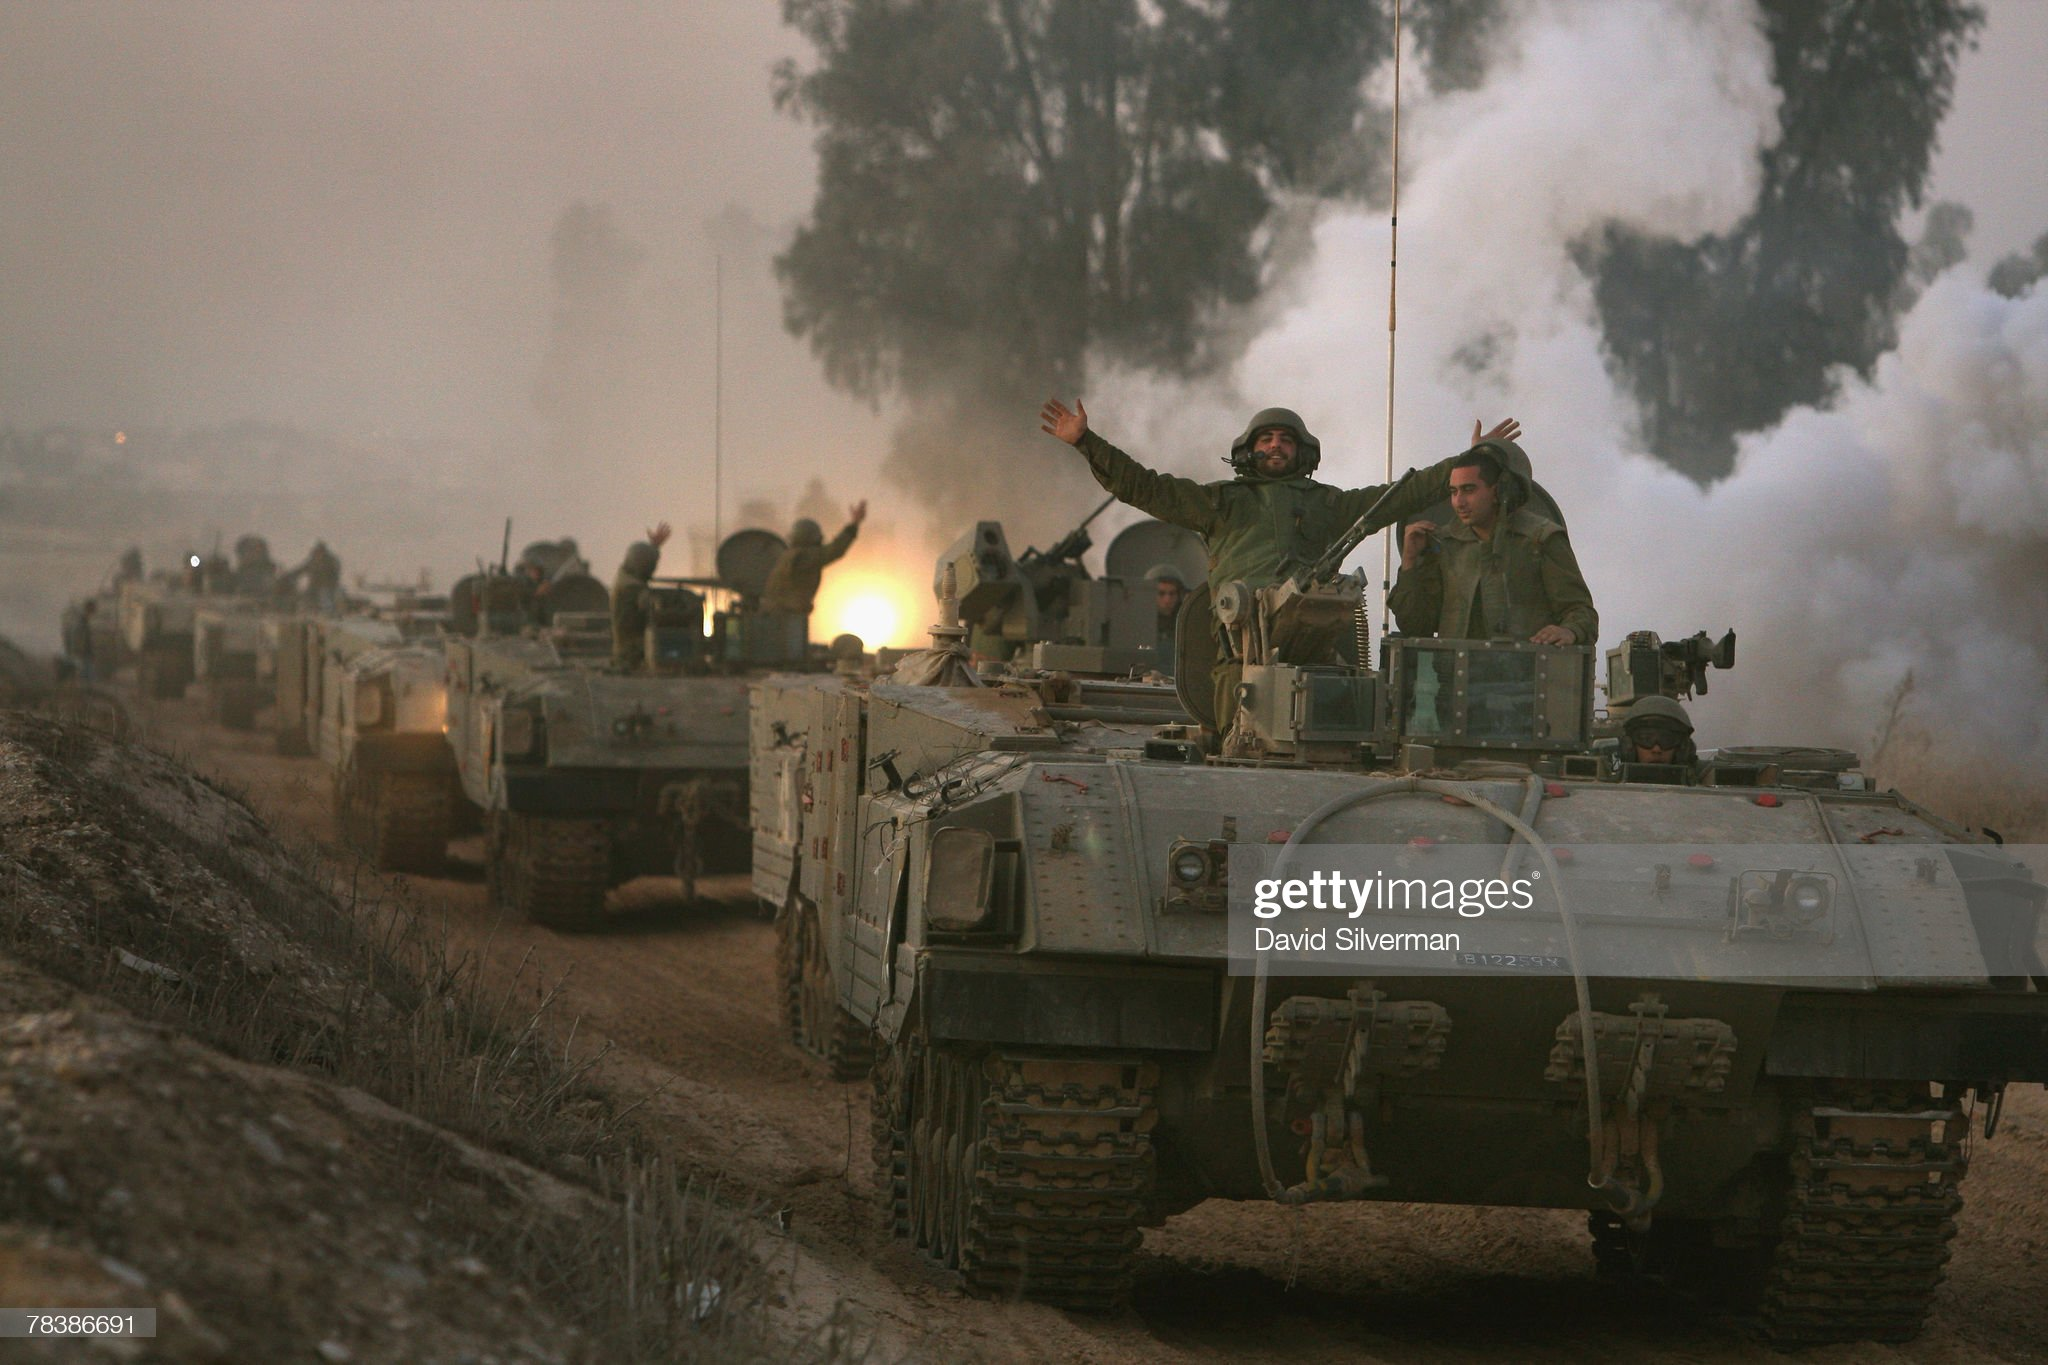 israeli-soldiers-in-a-convoy-of-armoured-vehicles-celebrate-their-picture-id78386691?s=2048x2048